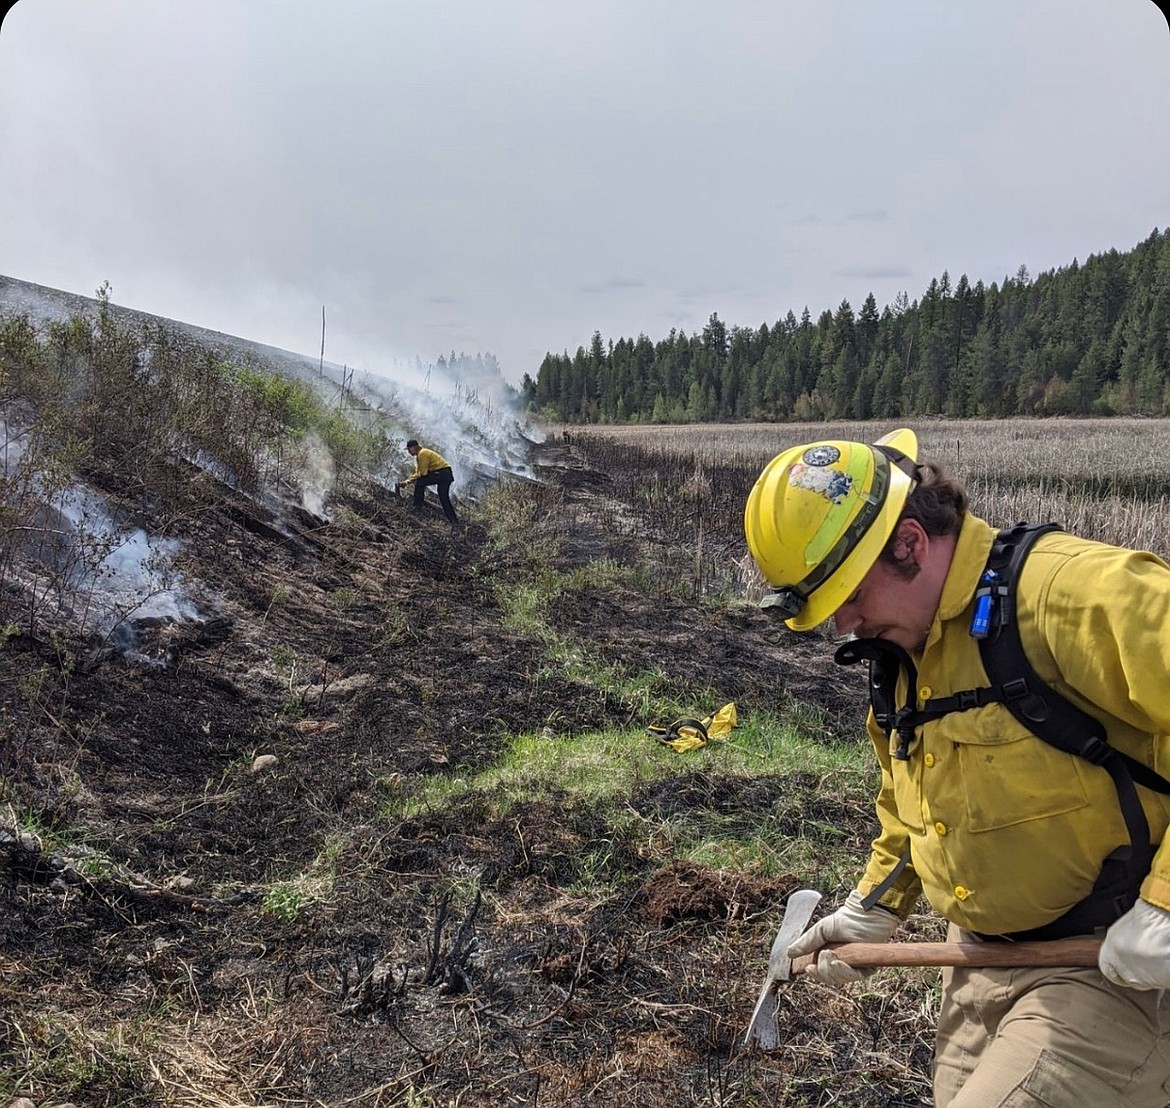 Timberlake Fire Protection District Firefighter Jack Duclos, right, works to put out a fire off Kelso Lake Road on May 12. The fire was started by children playing with matches. As fire season heats up in North Idaho, officials ask that people remain cautious and vigilant. A majority of recent fires have been caused by humans. (Photo courtesy of Timberlake Fire)